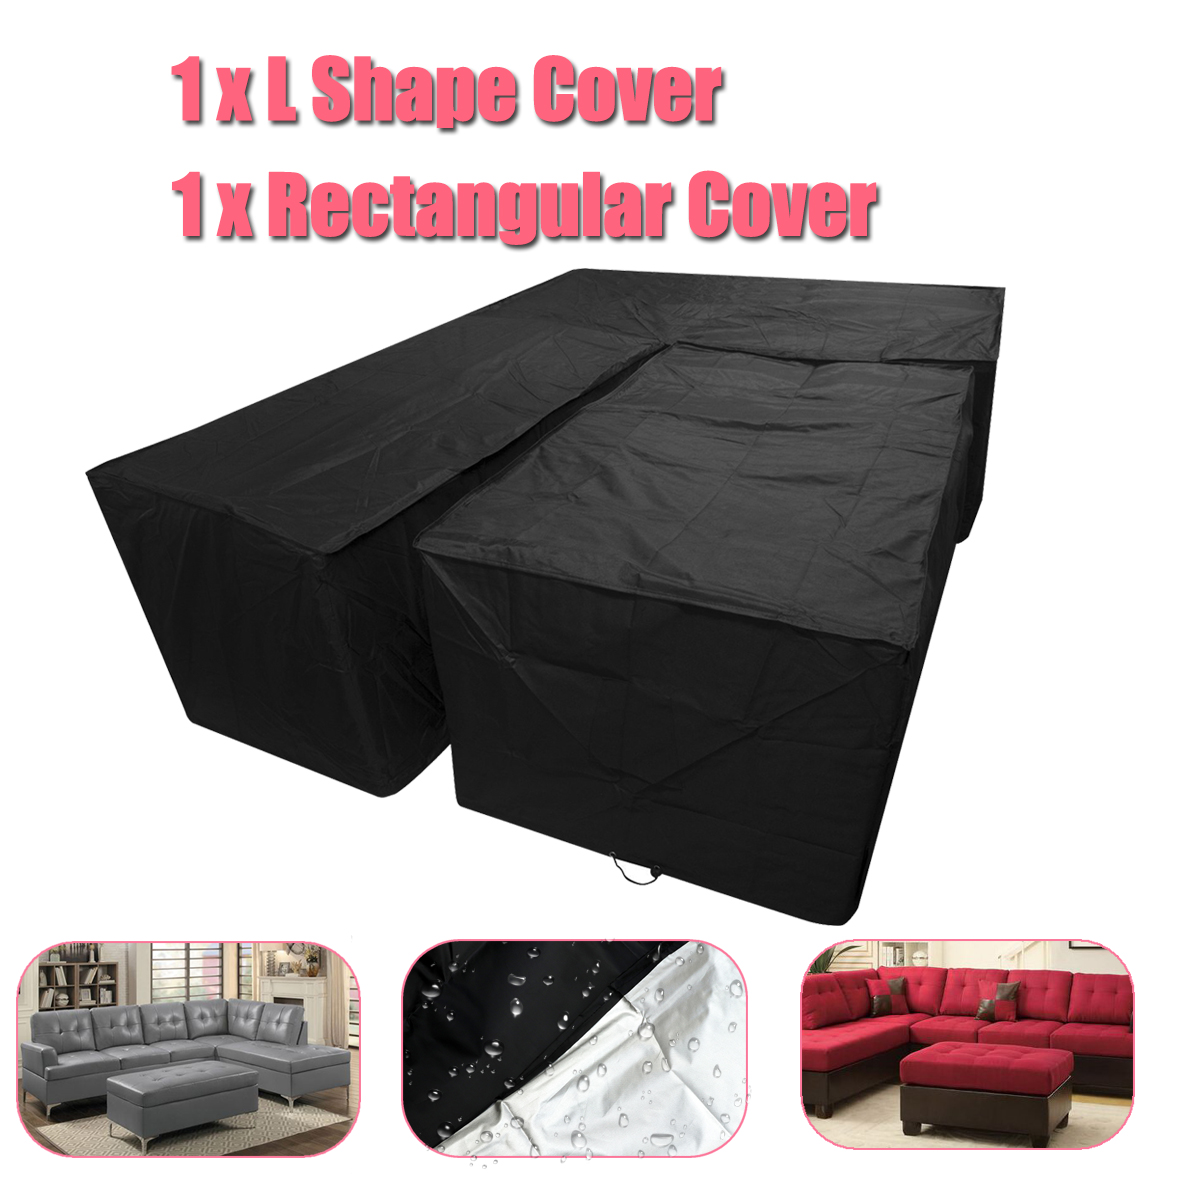 Waterproof Garden Outdoor Furniture Rain Cover Cloth Sets Polyester Dustproof Protect Cover Fabric for Sofa Suits